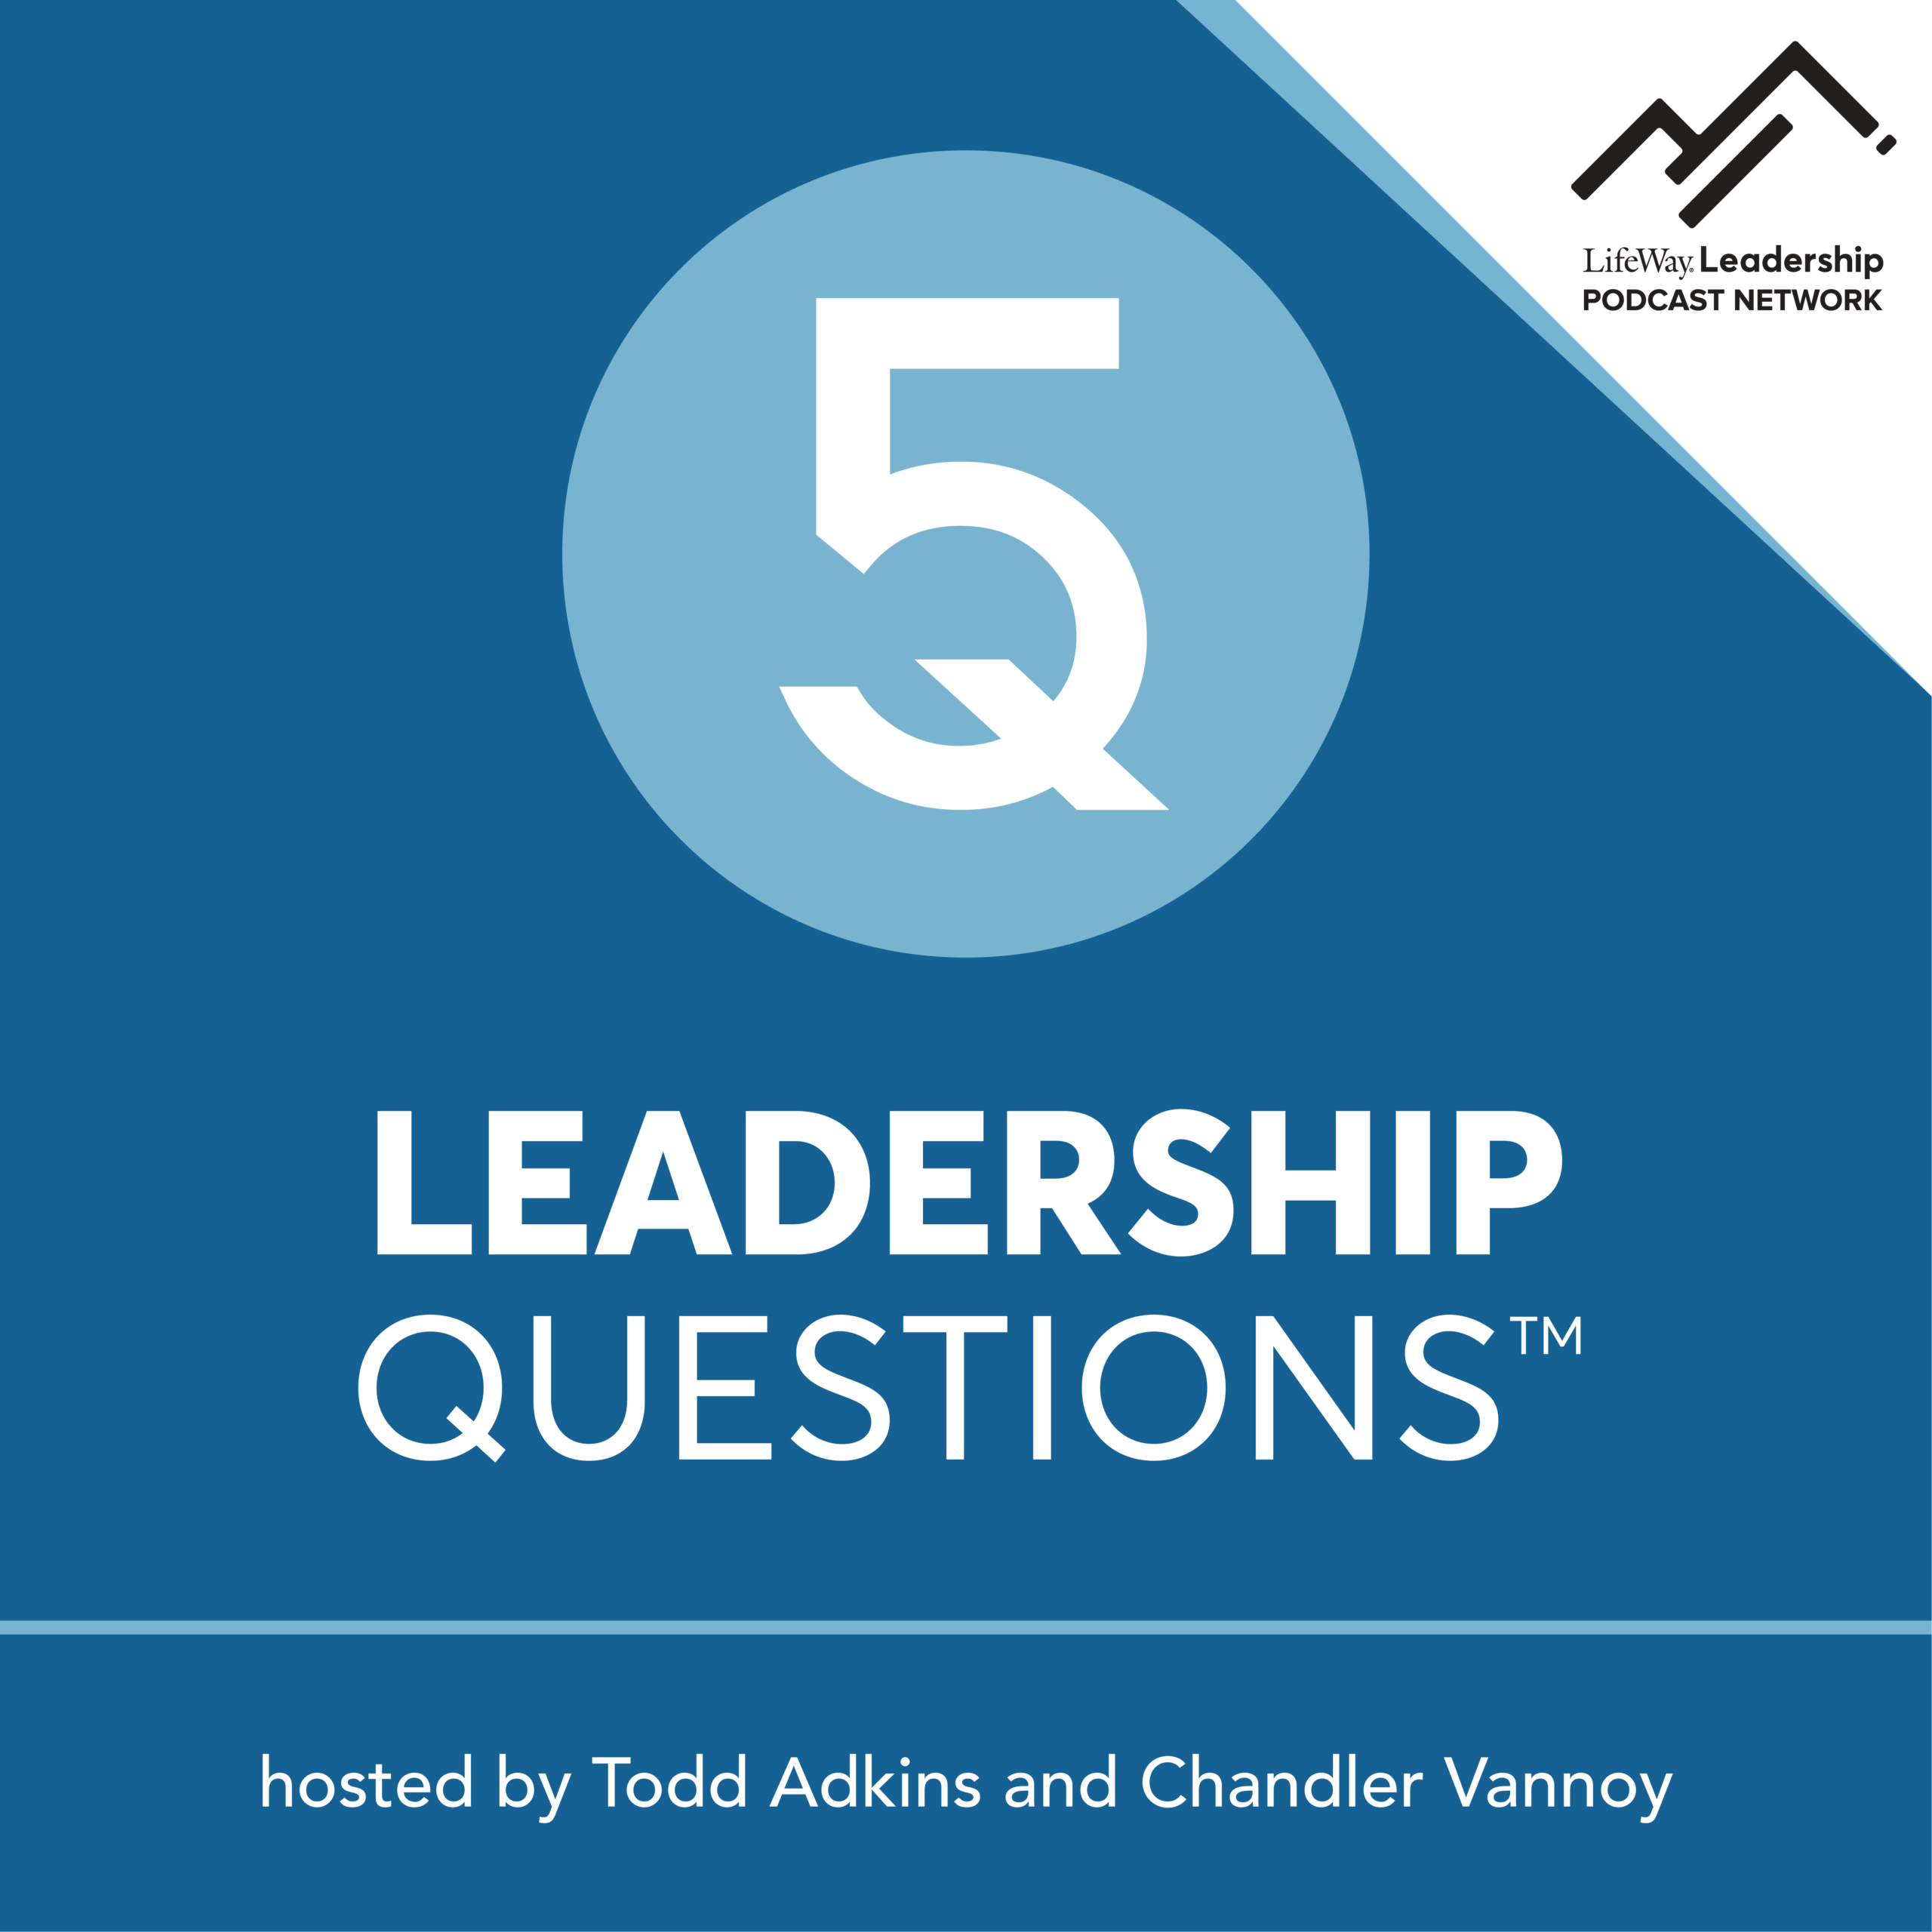 5 Leadership Questions Podcast on Church Leadership with Todd Adkins and Chandler Vannoy